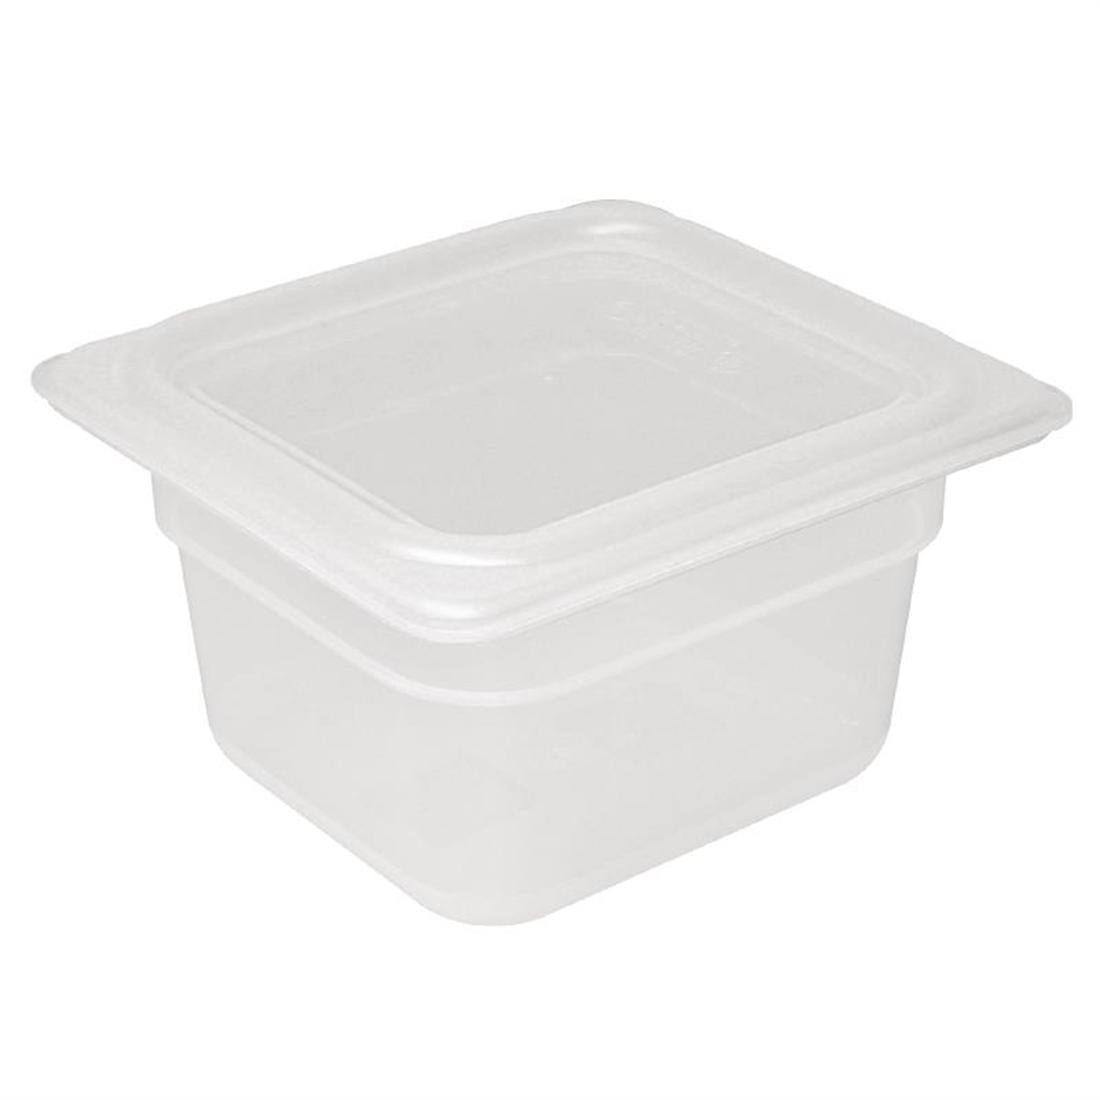 Vogue Polypropylene 1/6 Gastronorm Container with Lid 150mm - Pack of 4 - GJ527